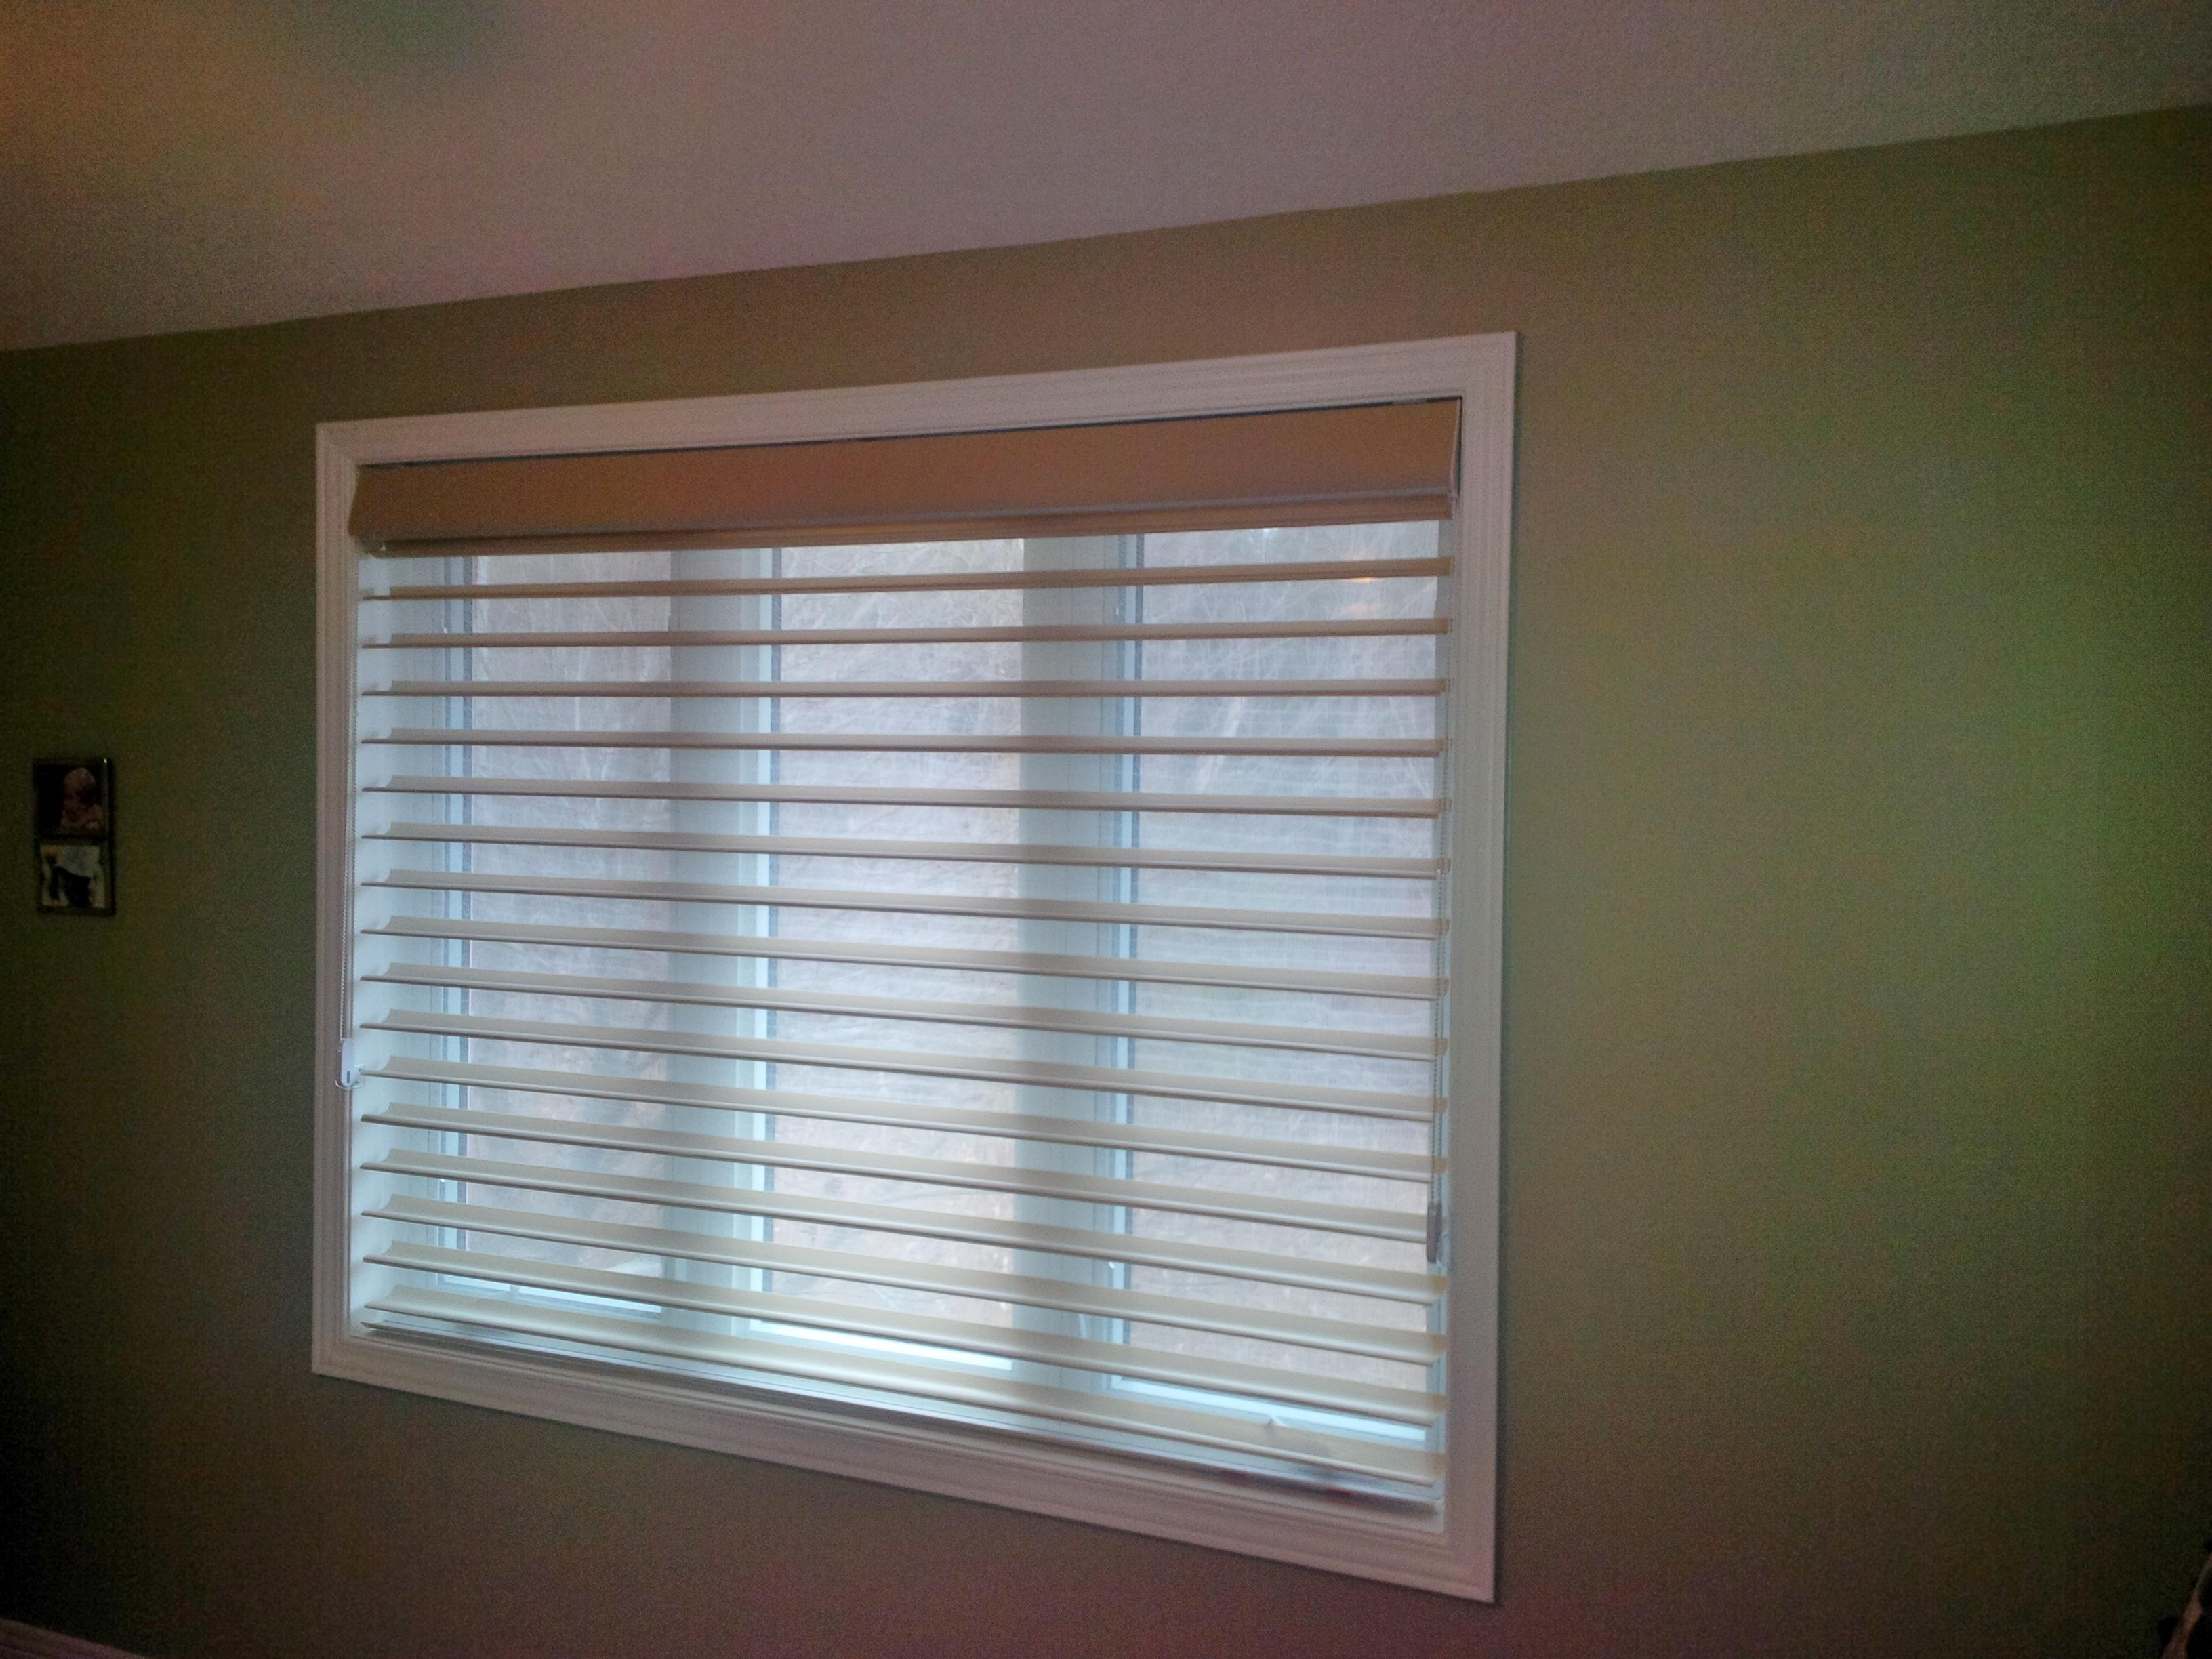 Budget Blinds à Waterloo: Horizontal Window Shadings have long been considered one of the most elegant window coverings.